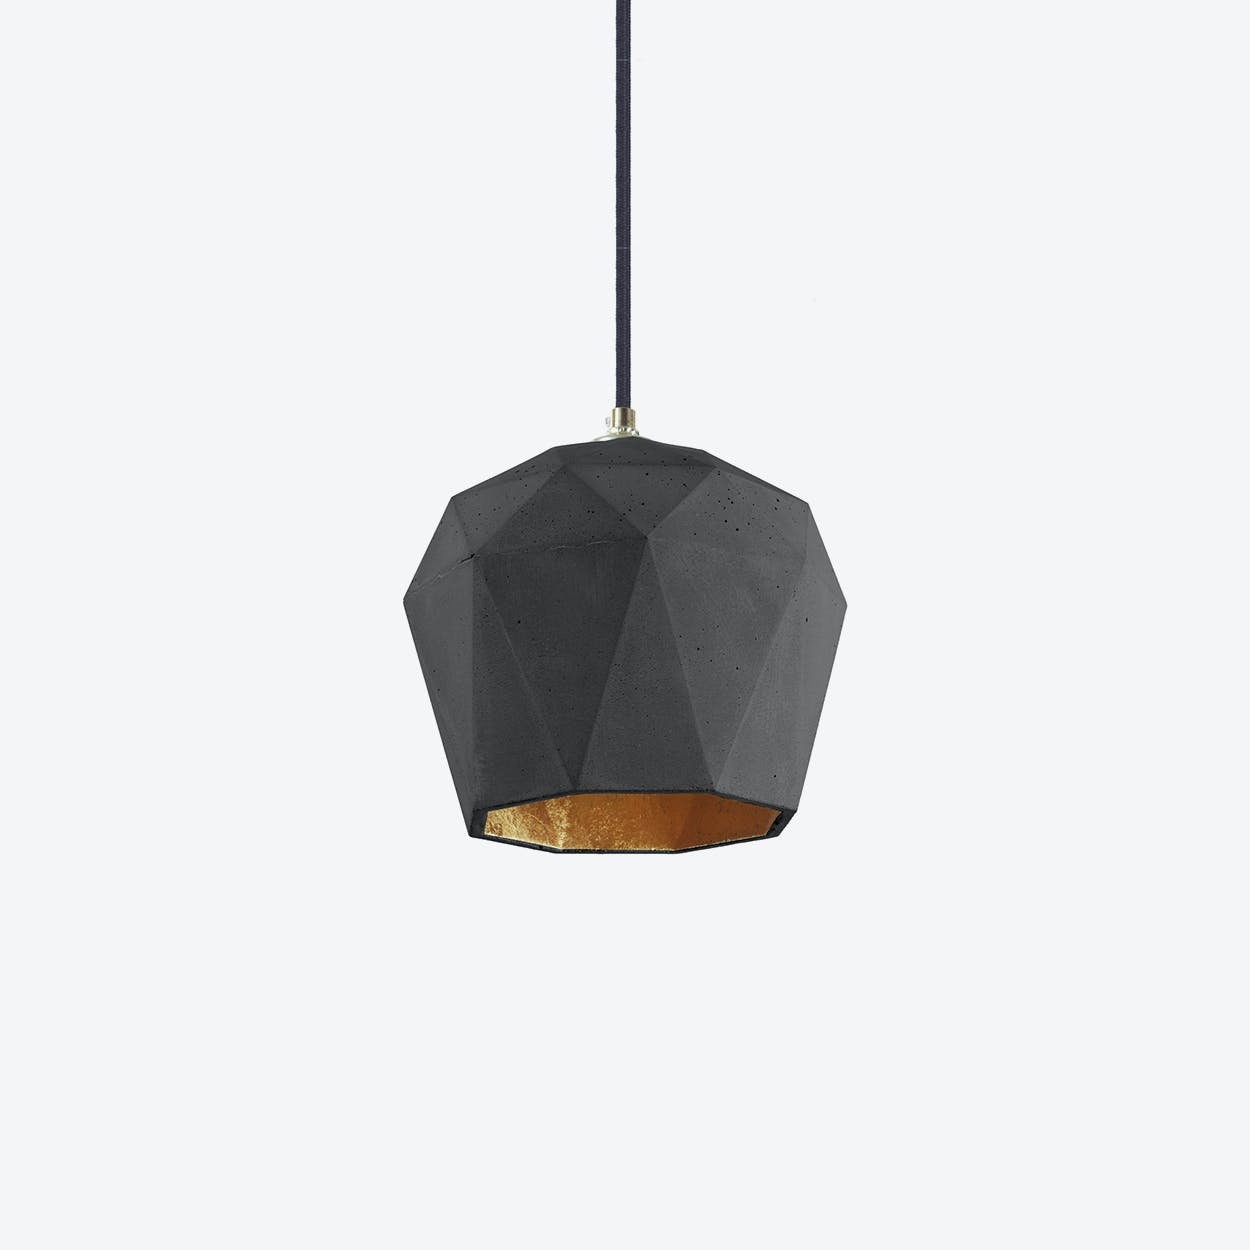 Concrete Pendant Light Triangle T3 in Dark Grey and Gold